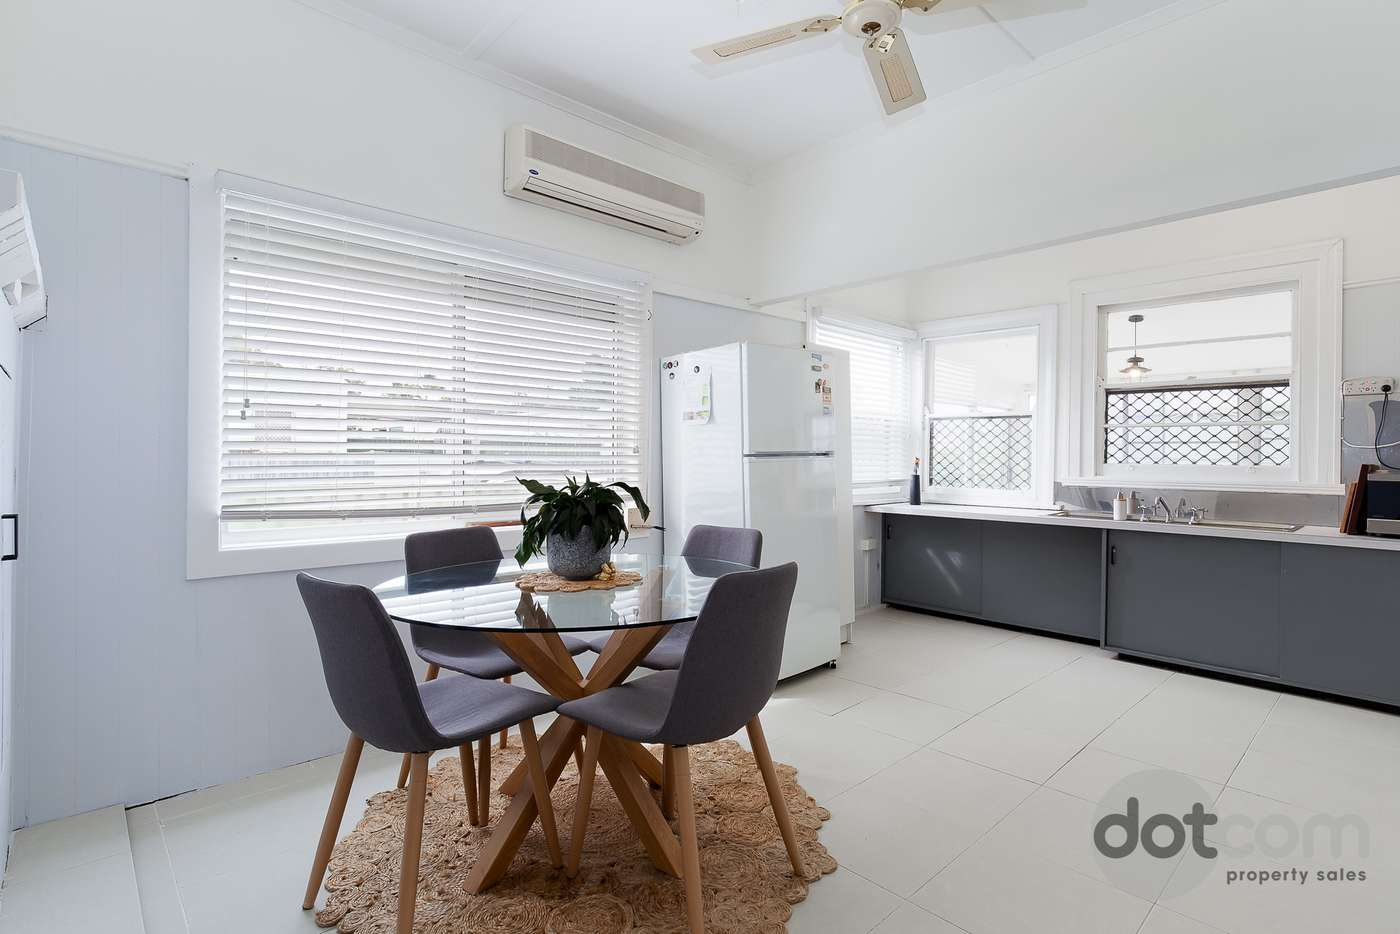 Sixth view of Homely house listing, 14 Bedford Street, Georgetown NSW 2298